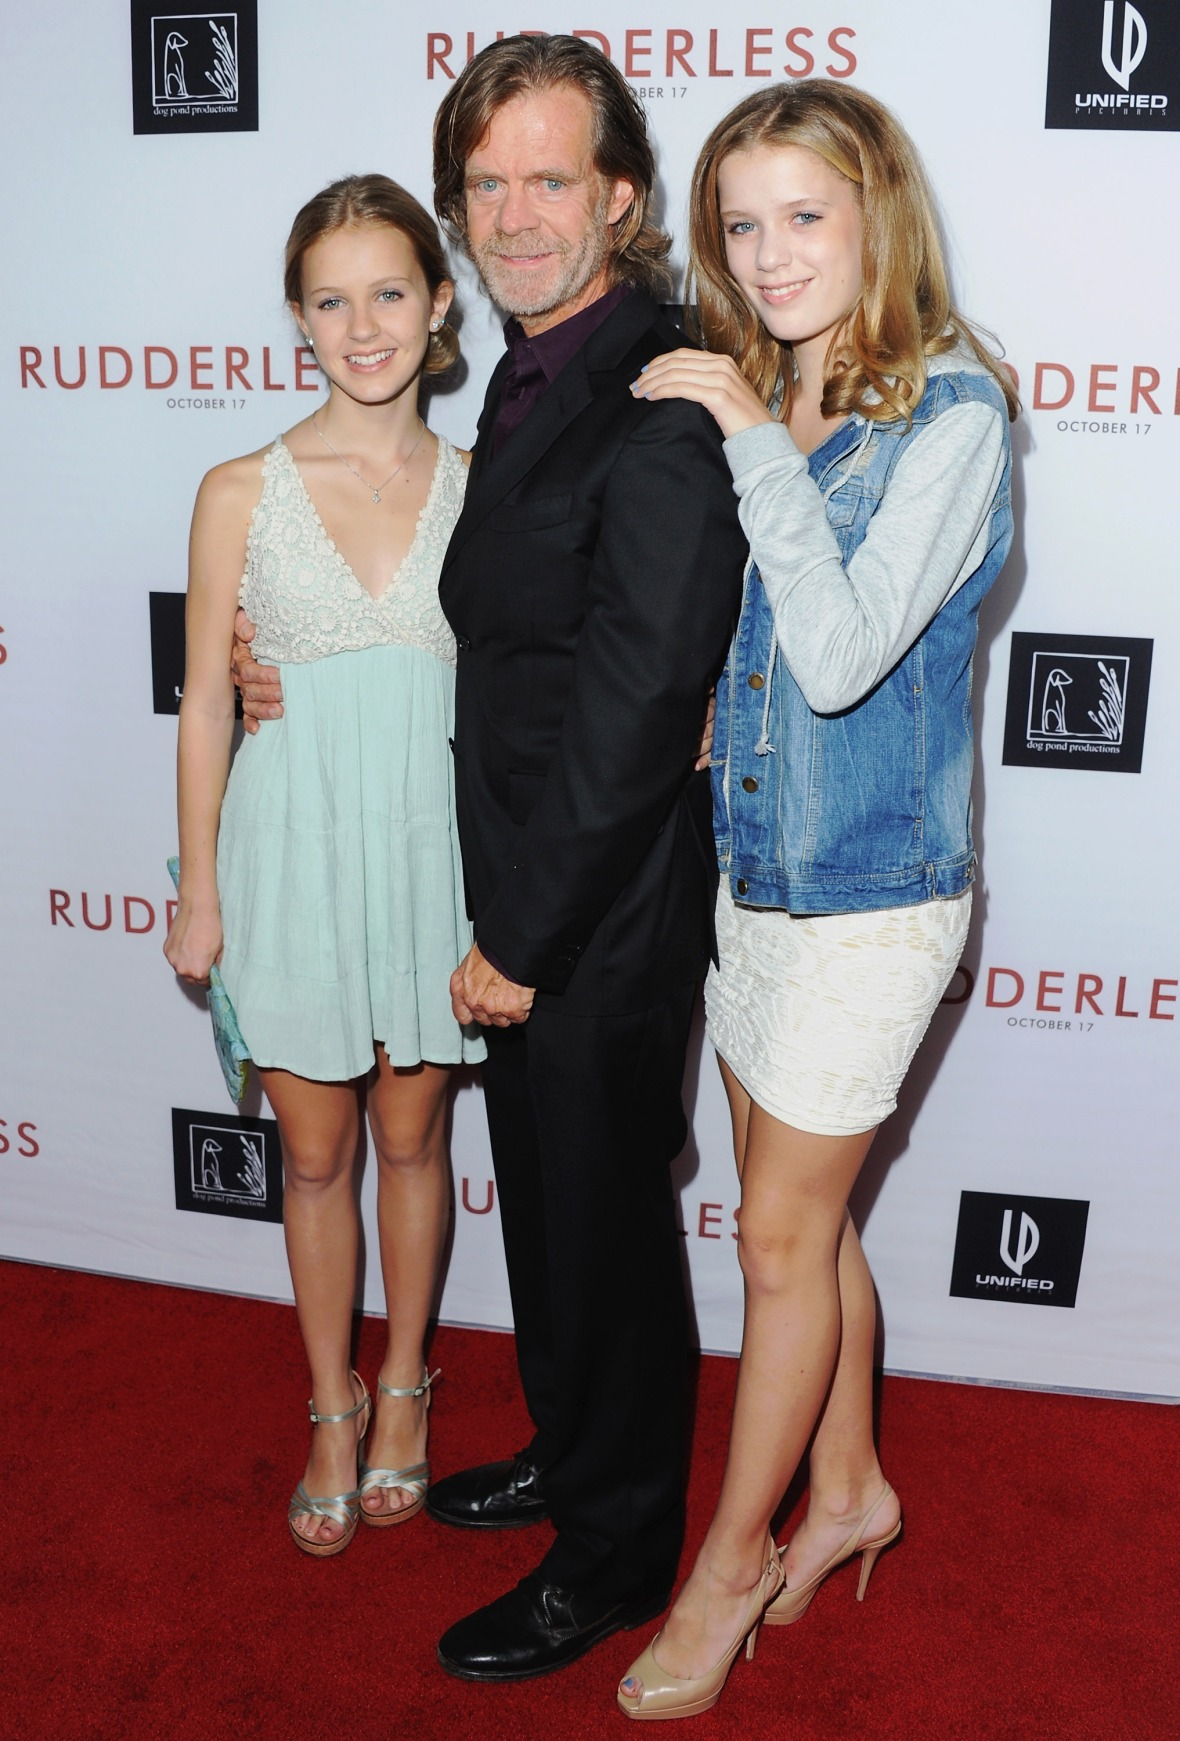 william h. macy daughters getty images